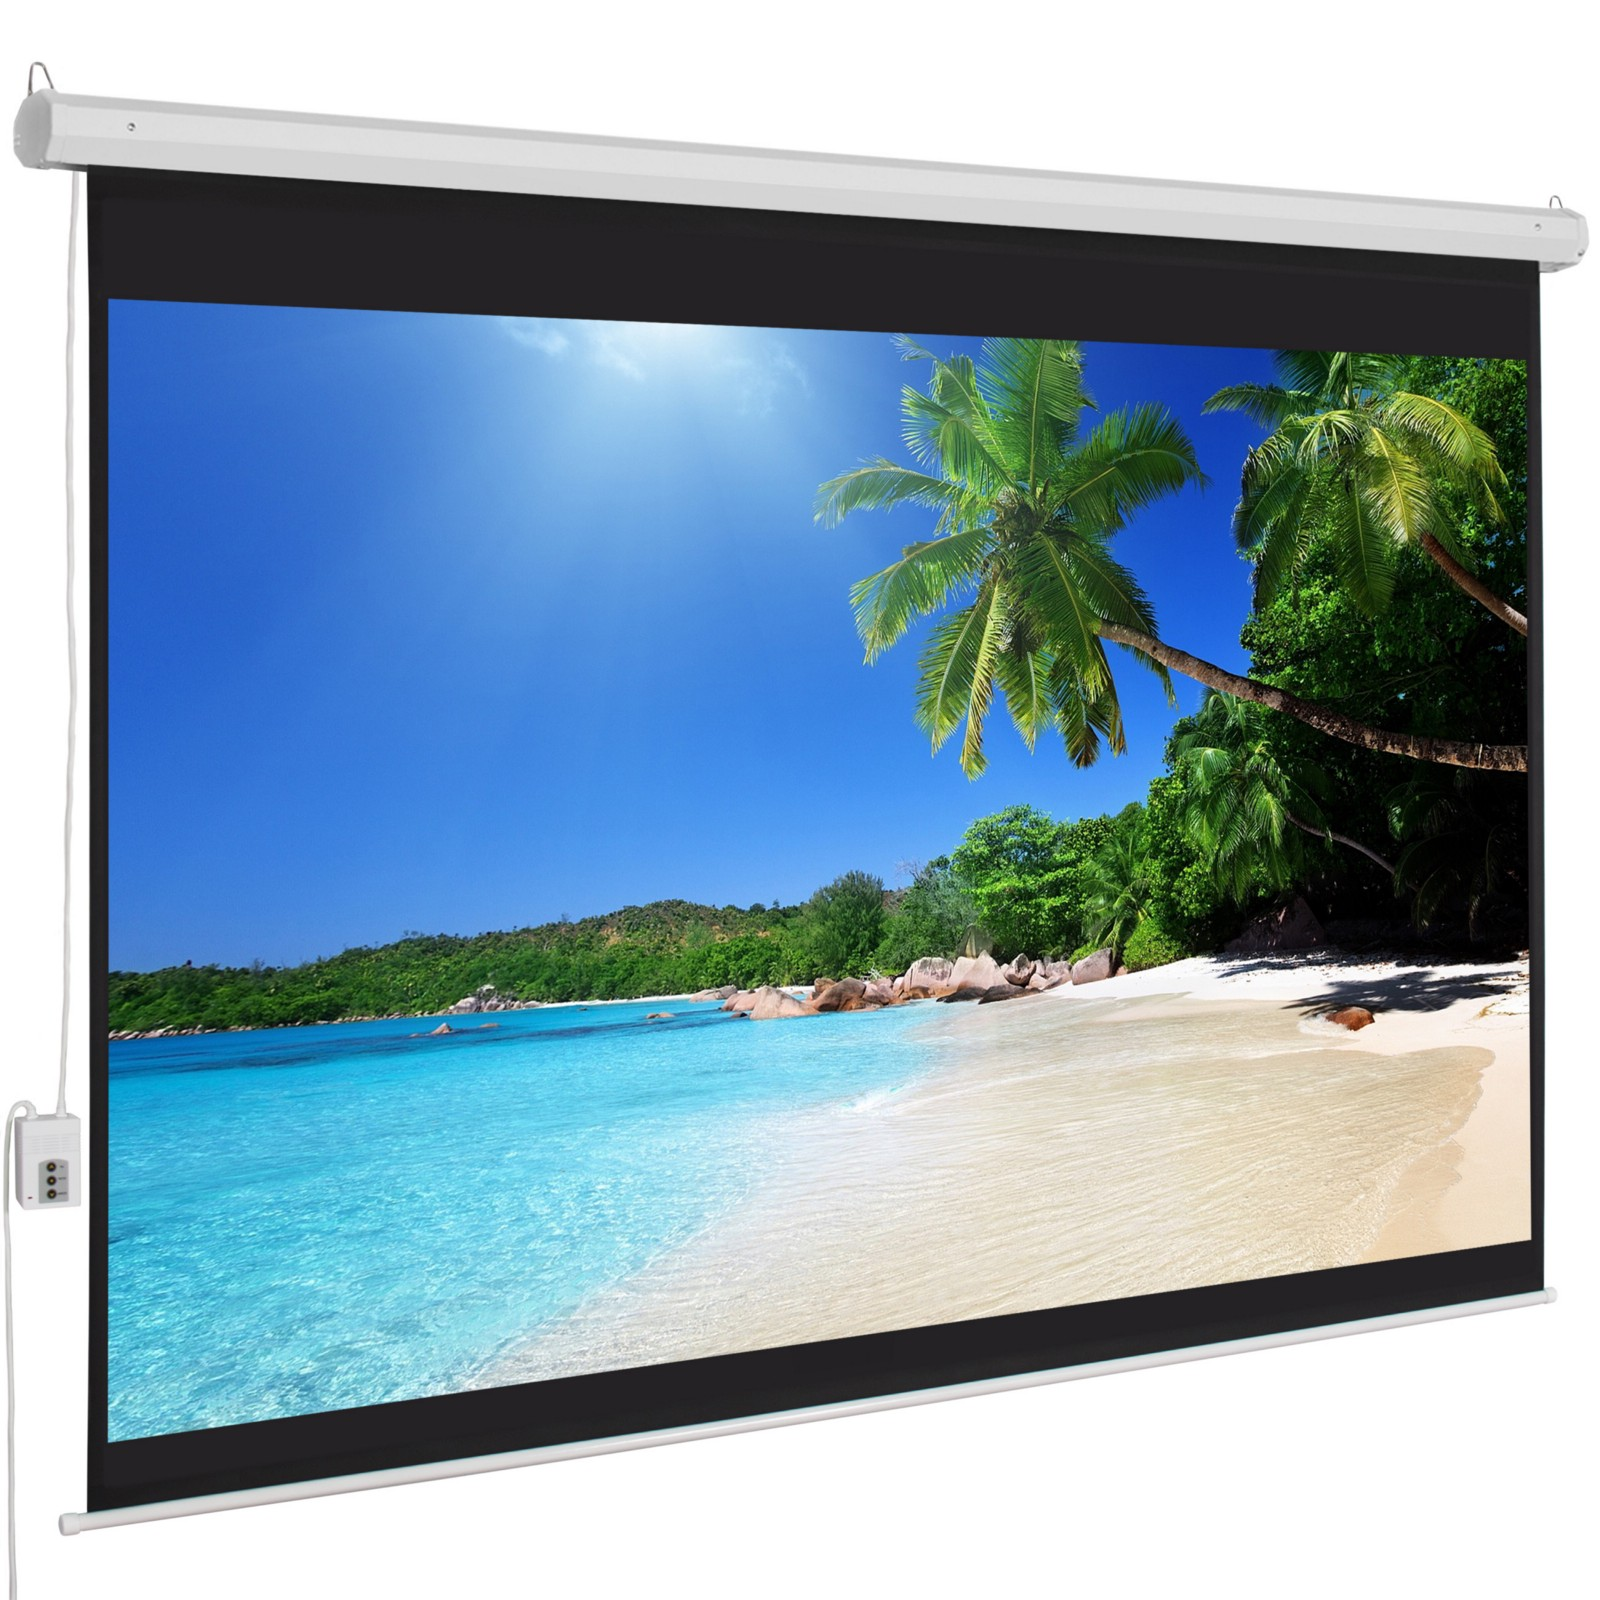 amplify your business with the right projector screen